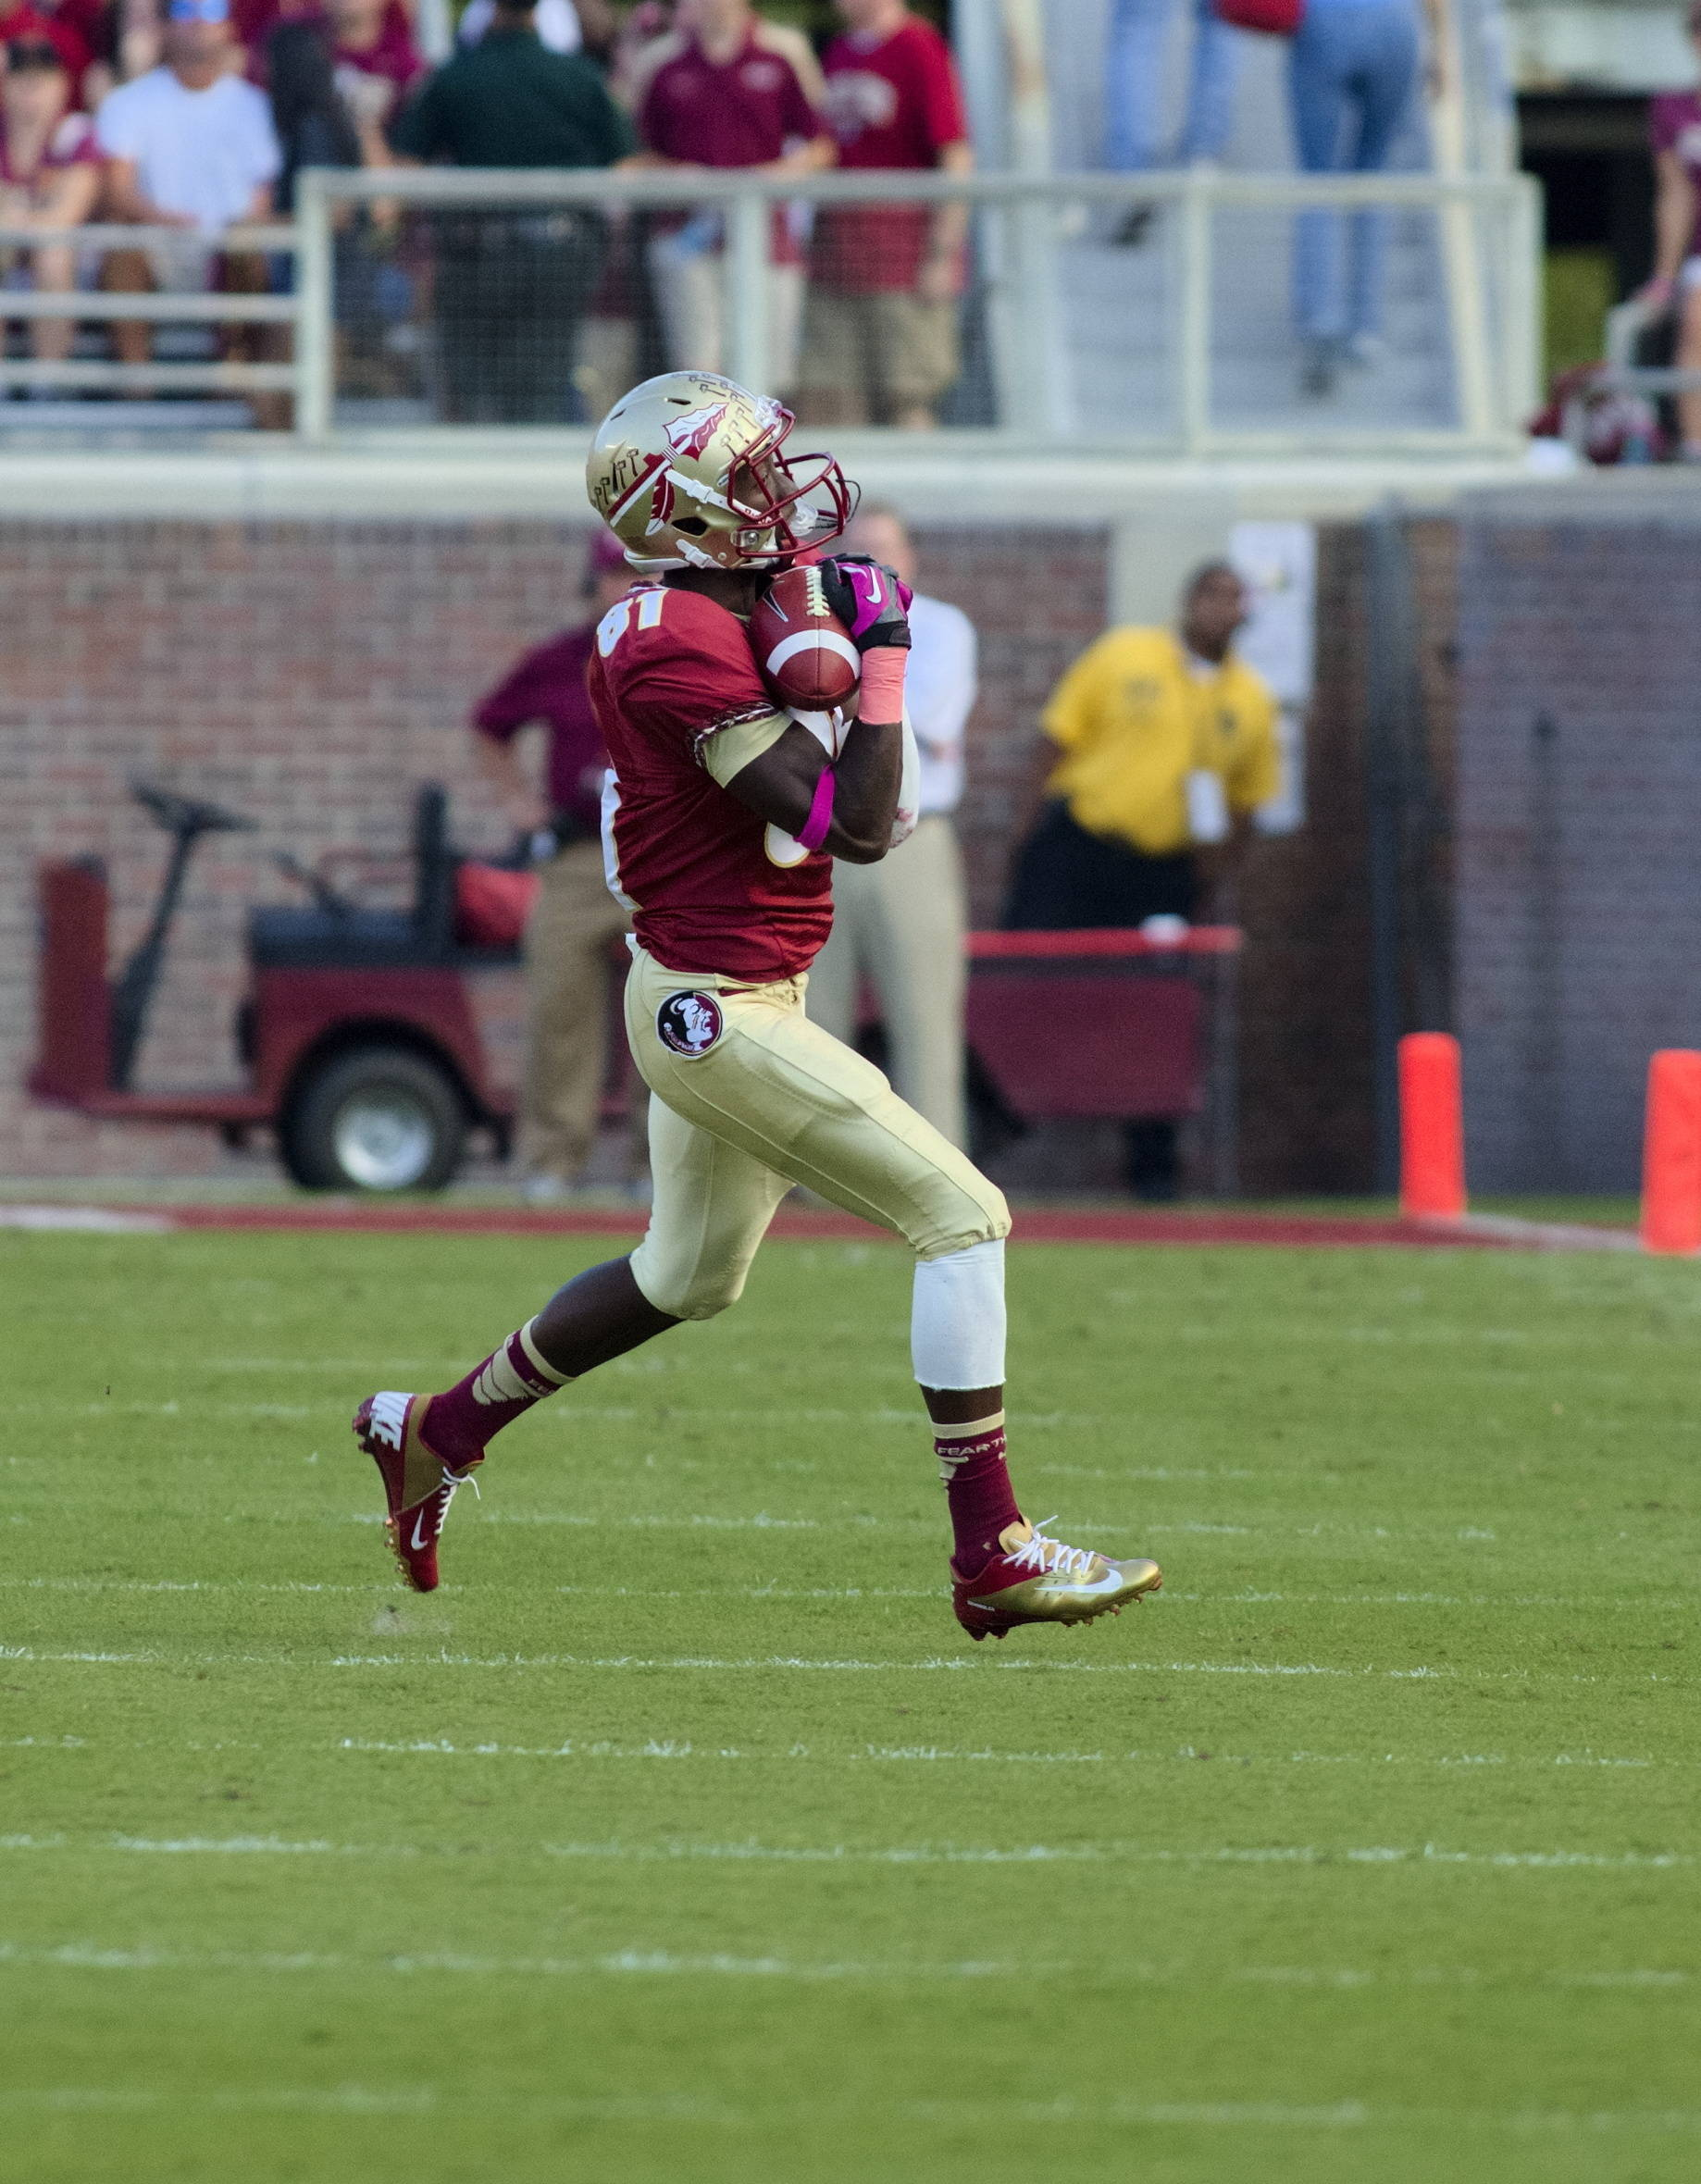 Kenny Shaw (81) with his touchdown catch, FSU vs BC, 10/13/12 (Photo by Steve Musco)